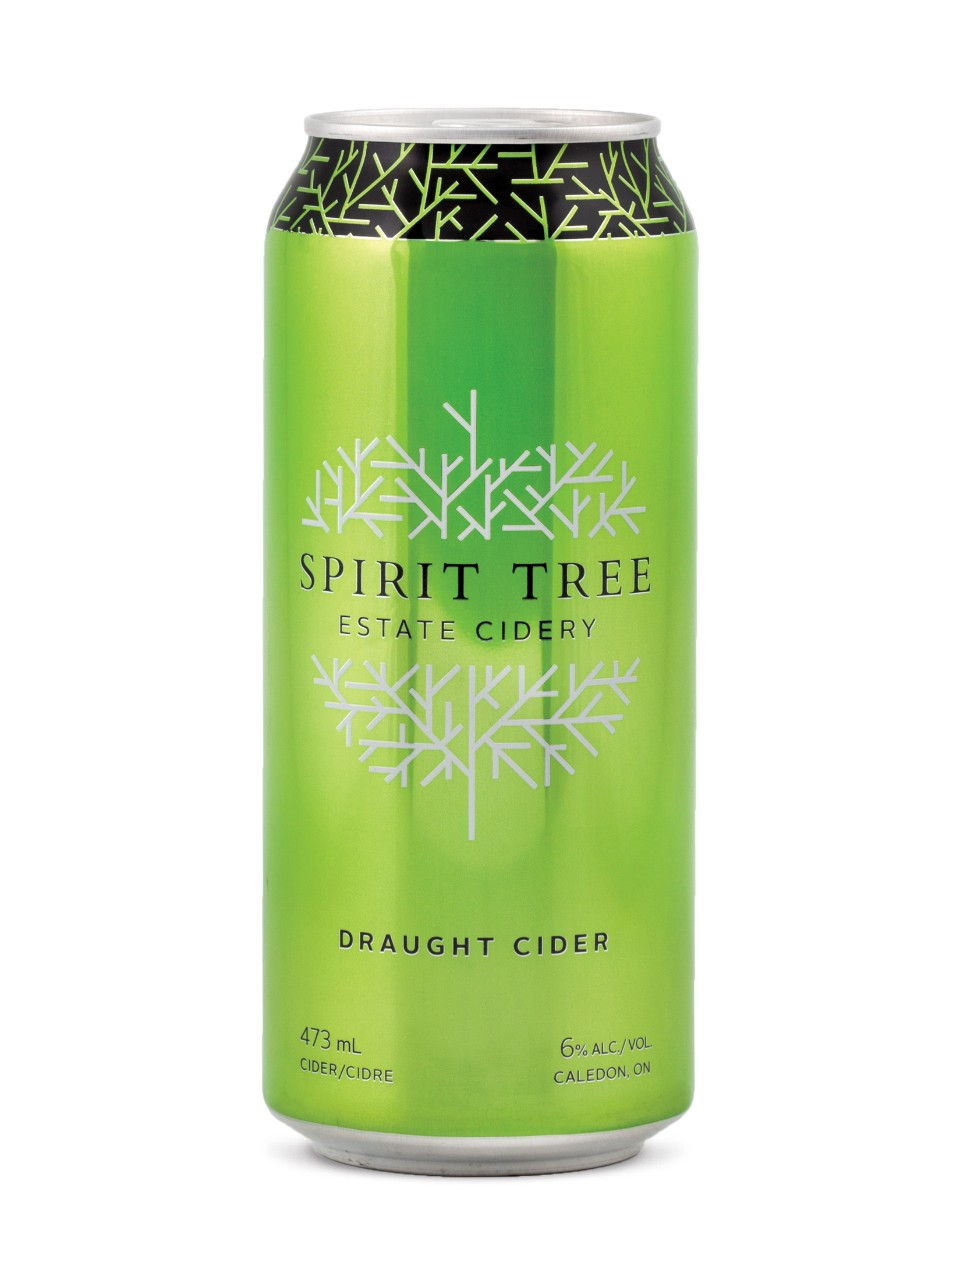 Spirit Tree Draught Cider from LCBO